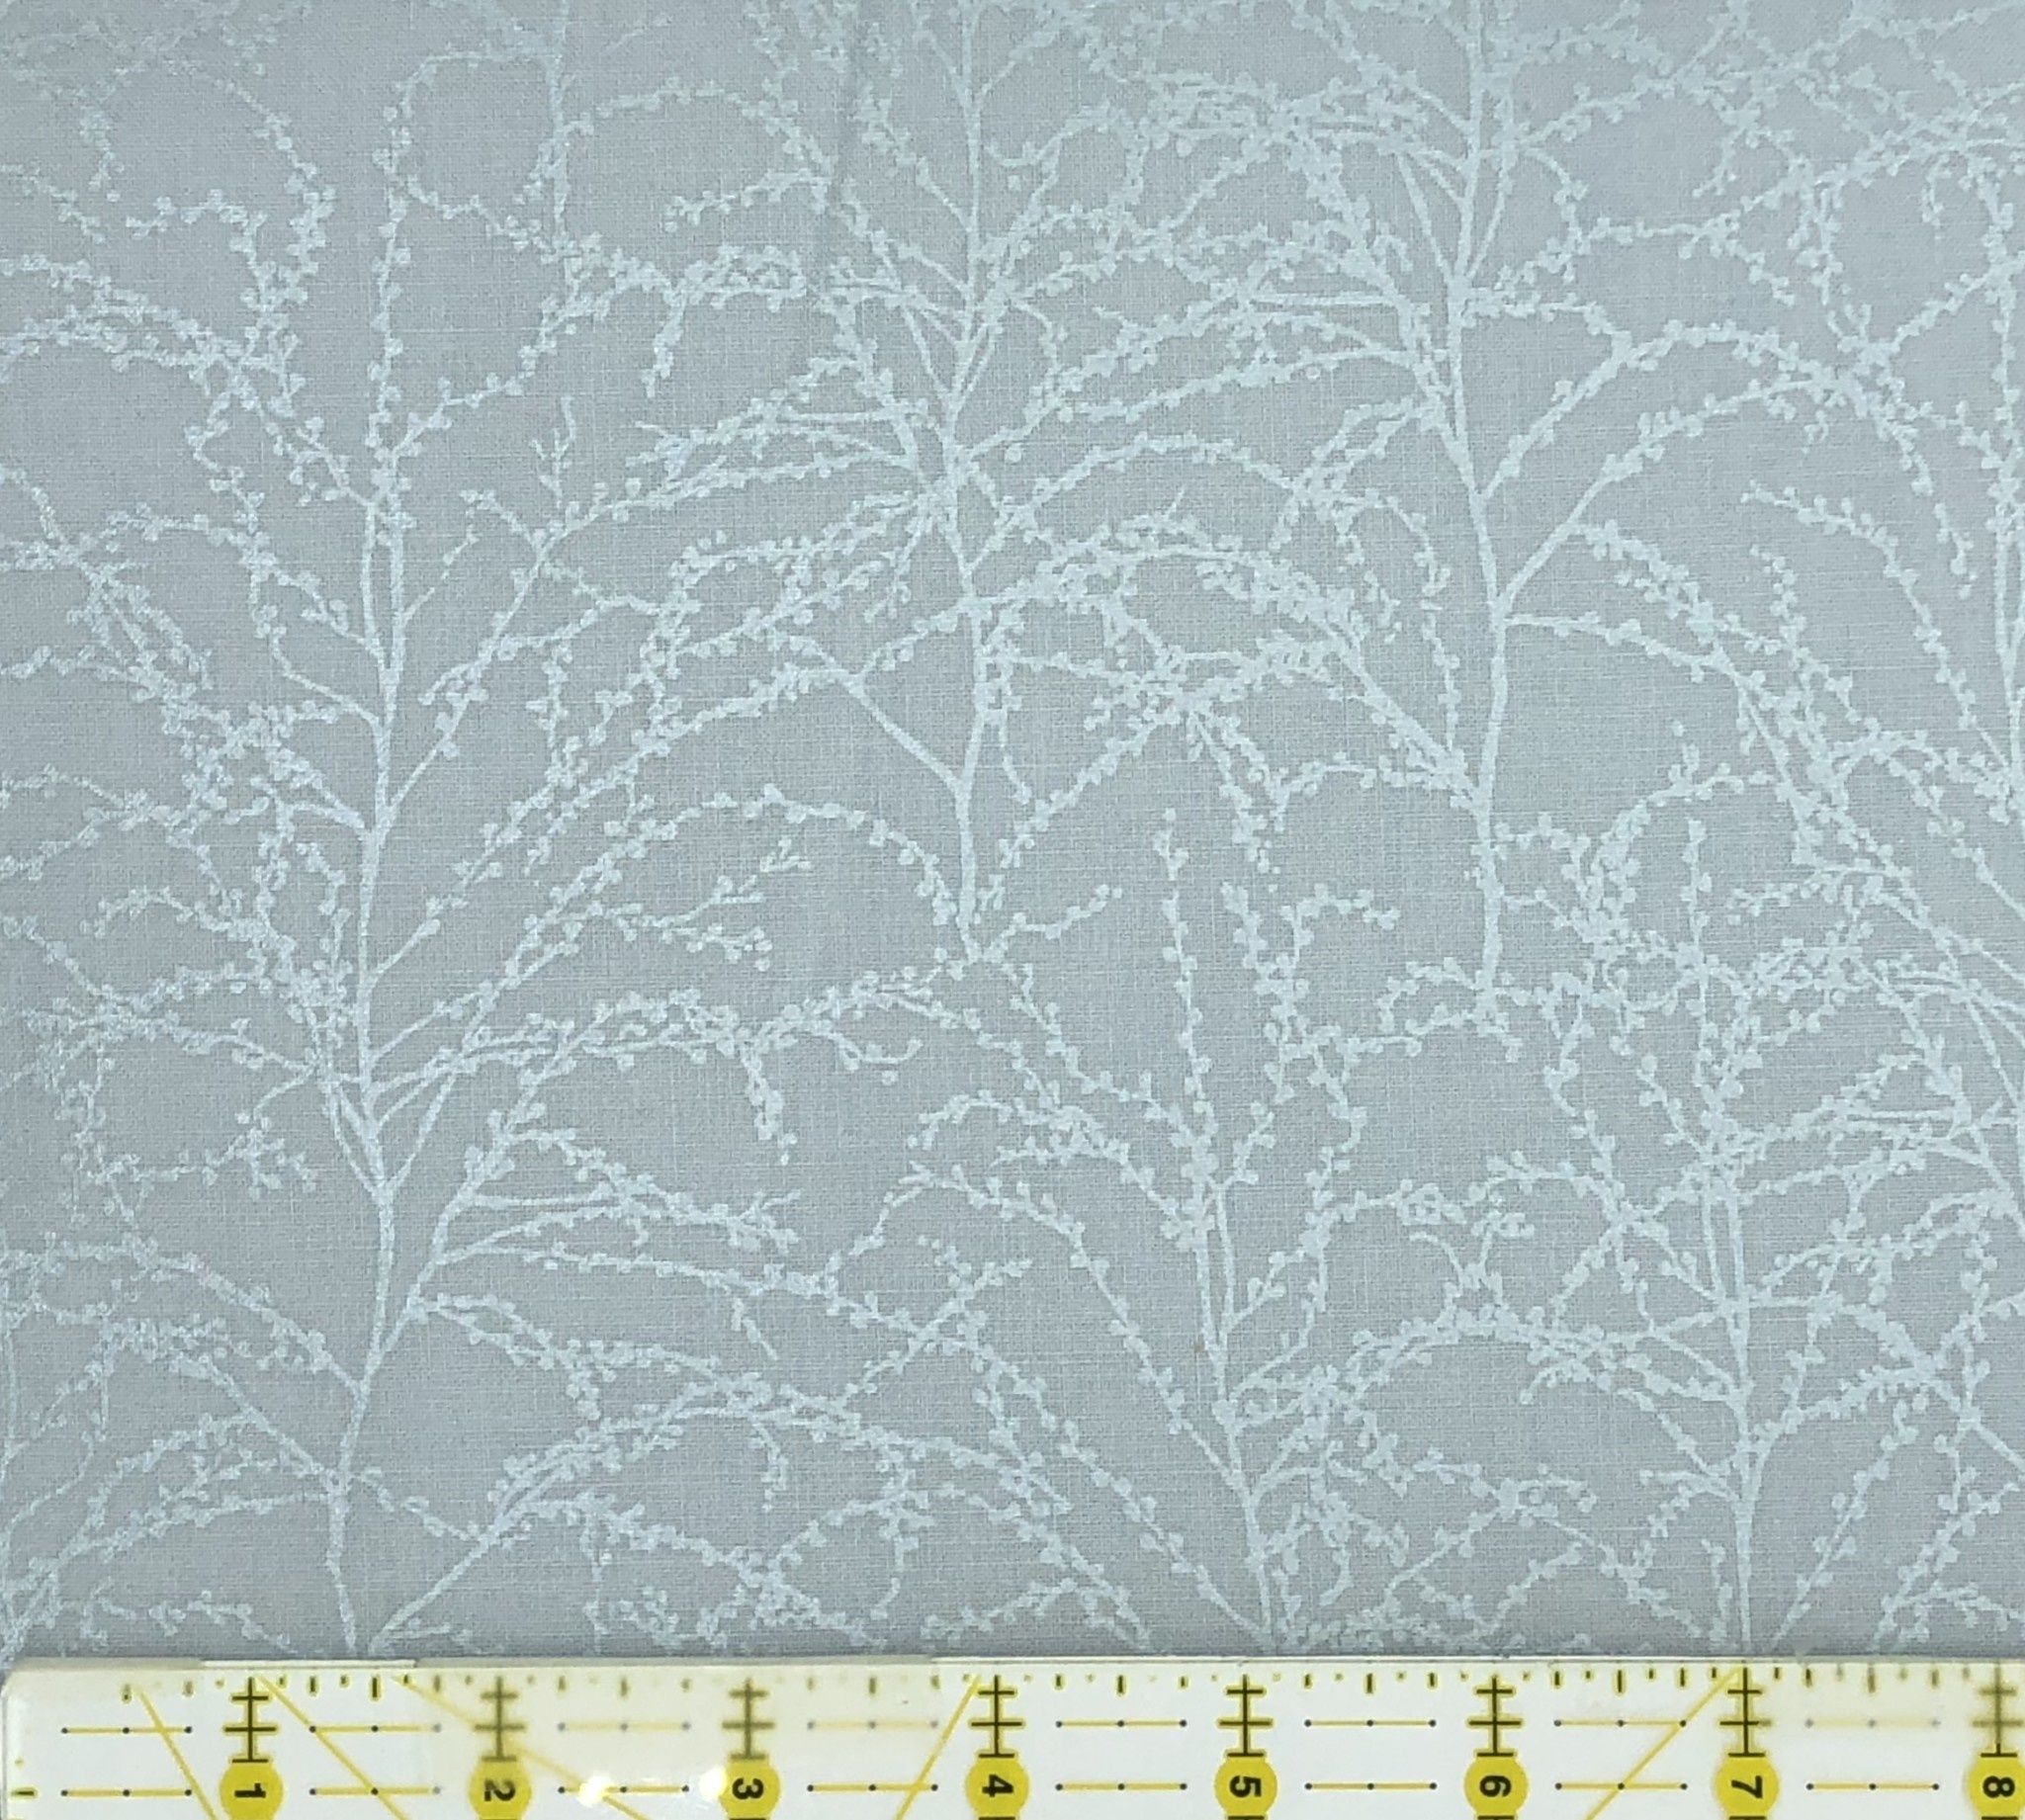 ROBERT KAUFMAN WINTER SHIMMER BY 18214/186 R KAUFMAN $0.20/CM OR $20/M